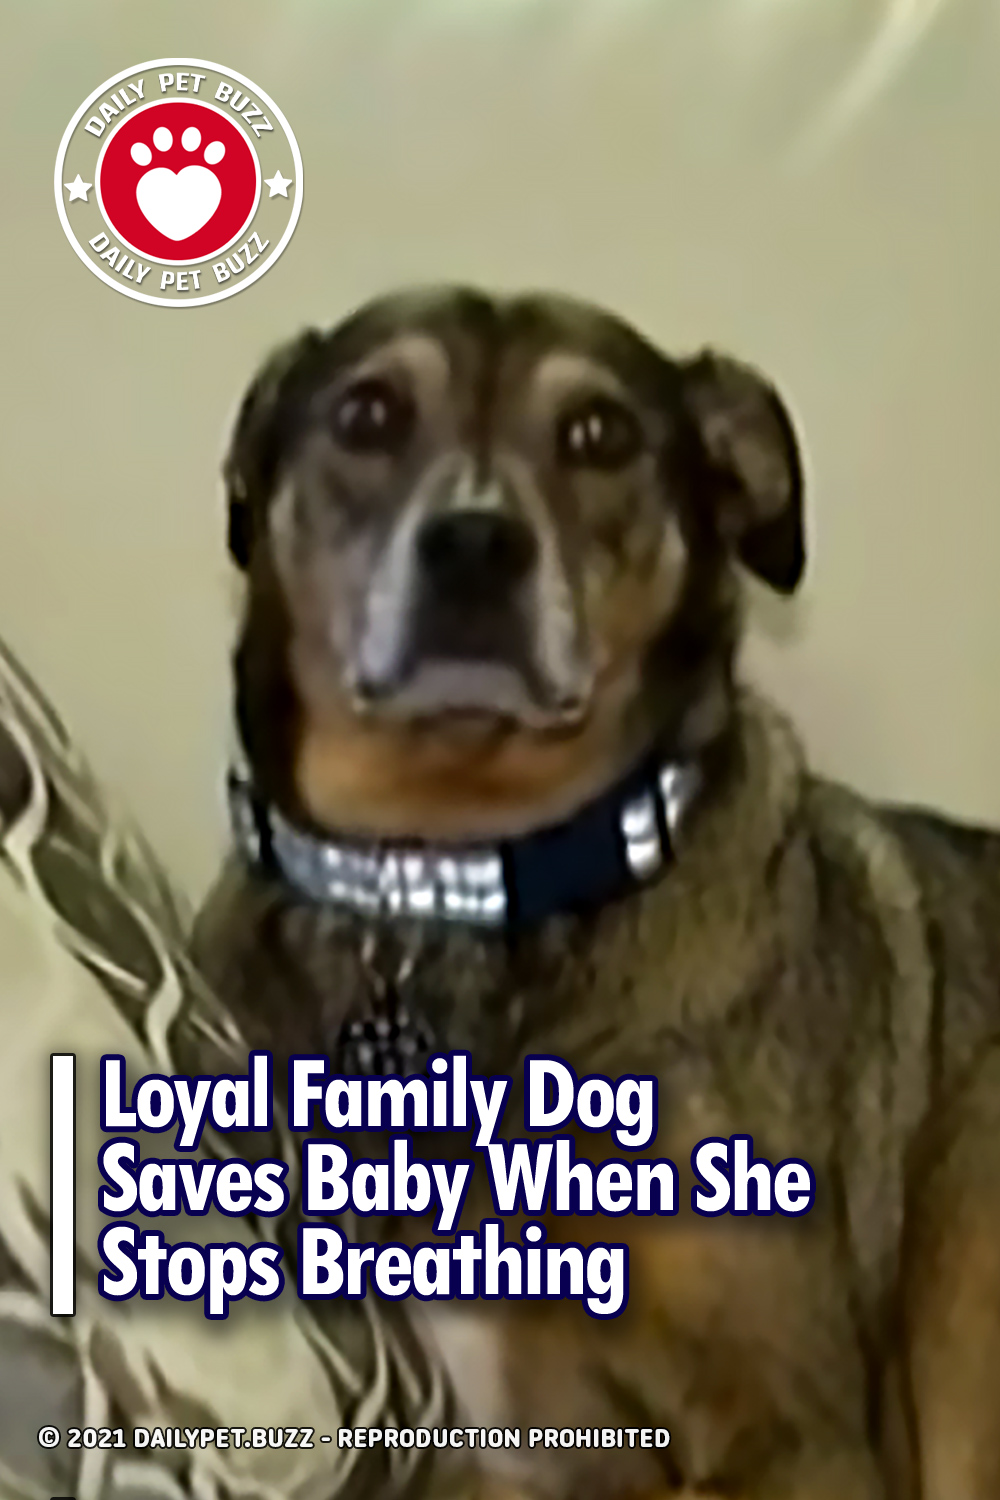 Loyal Family Dog Saves Baby When She Stops Breathing